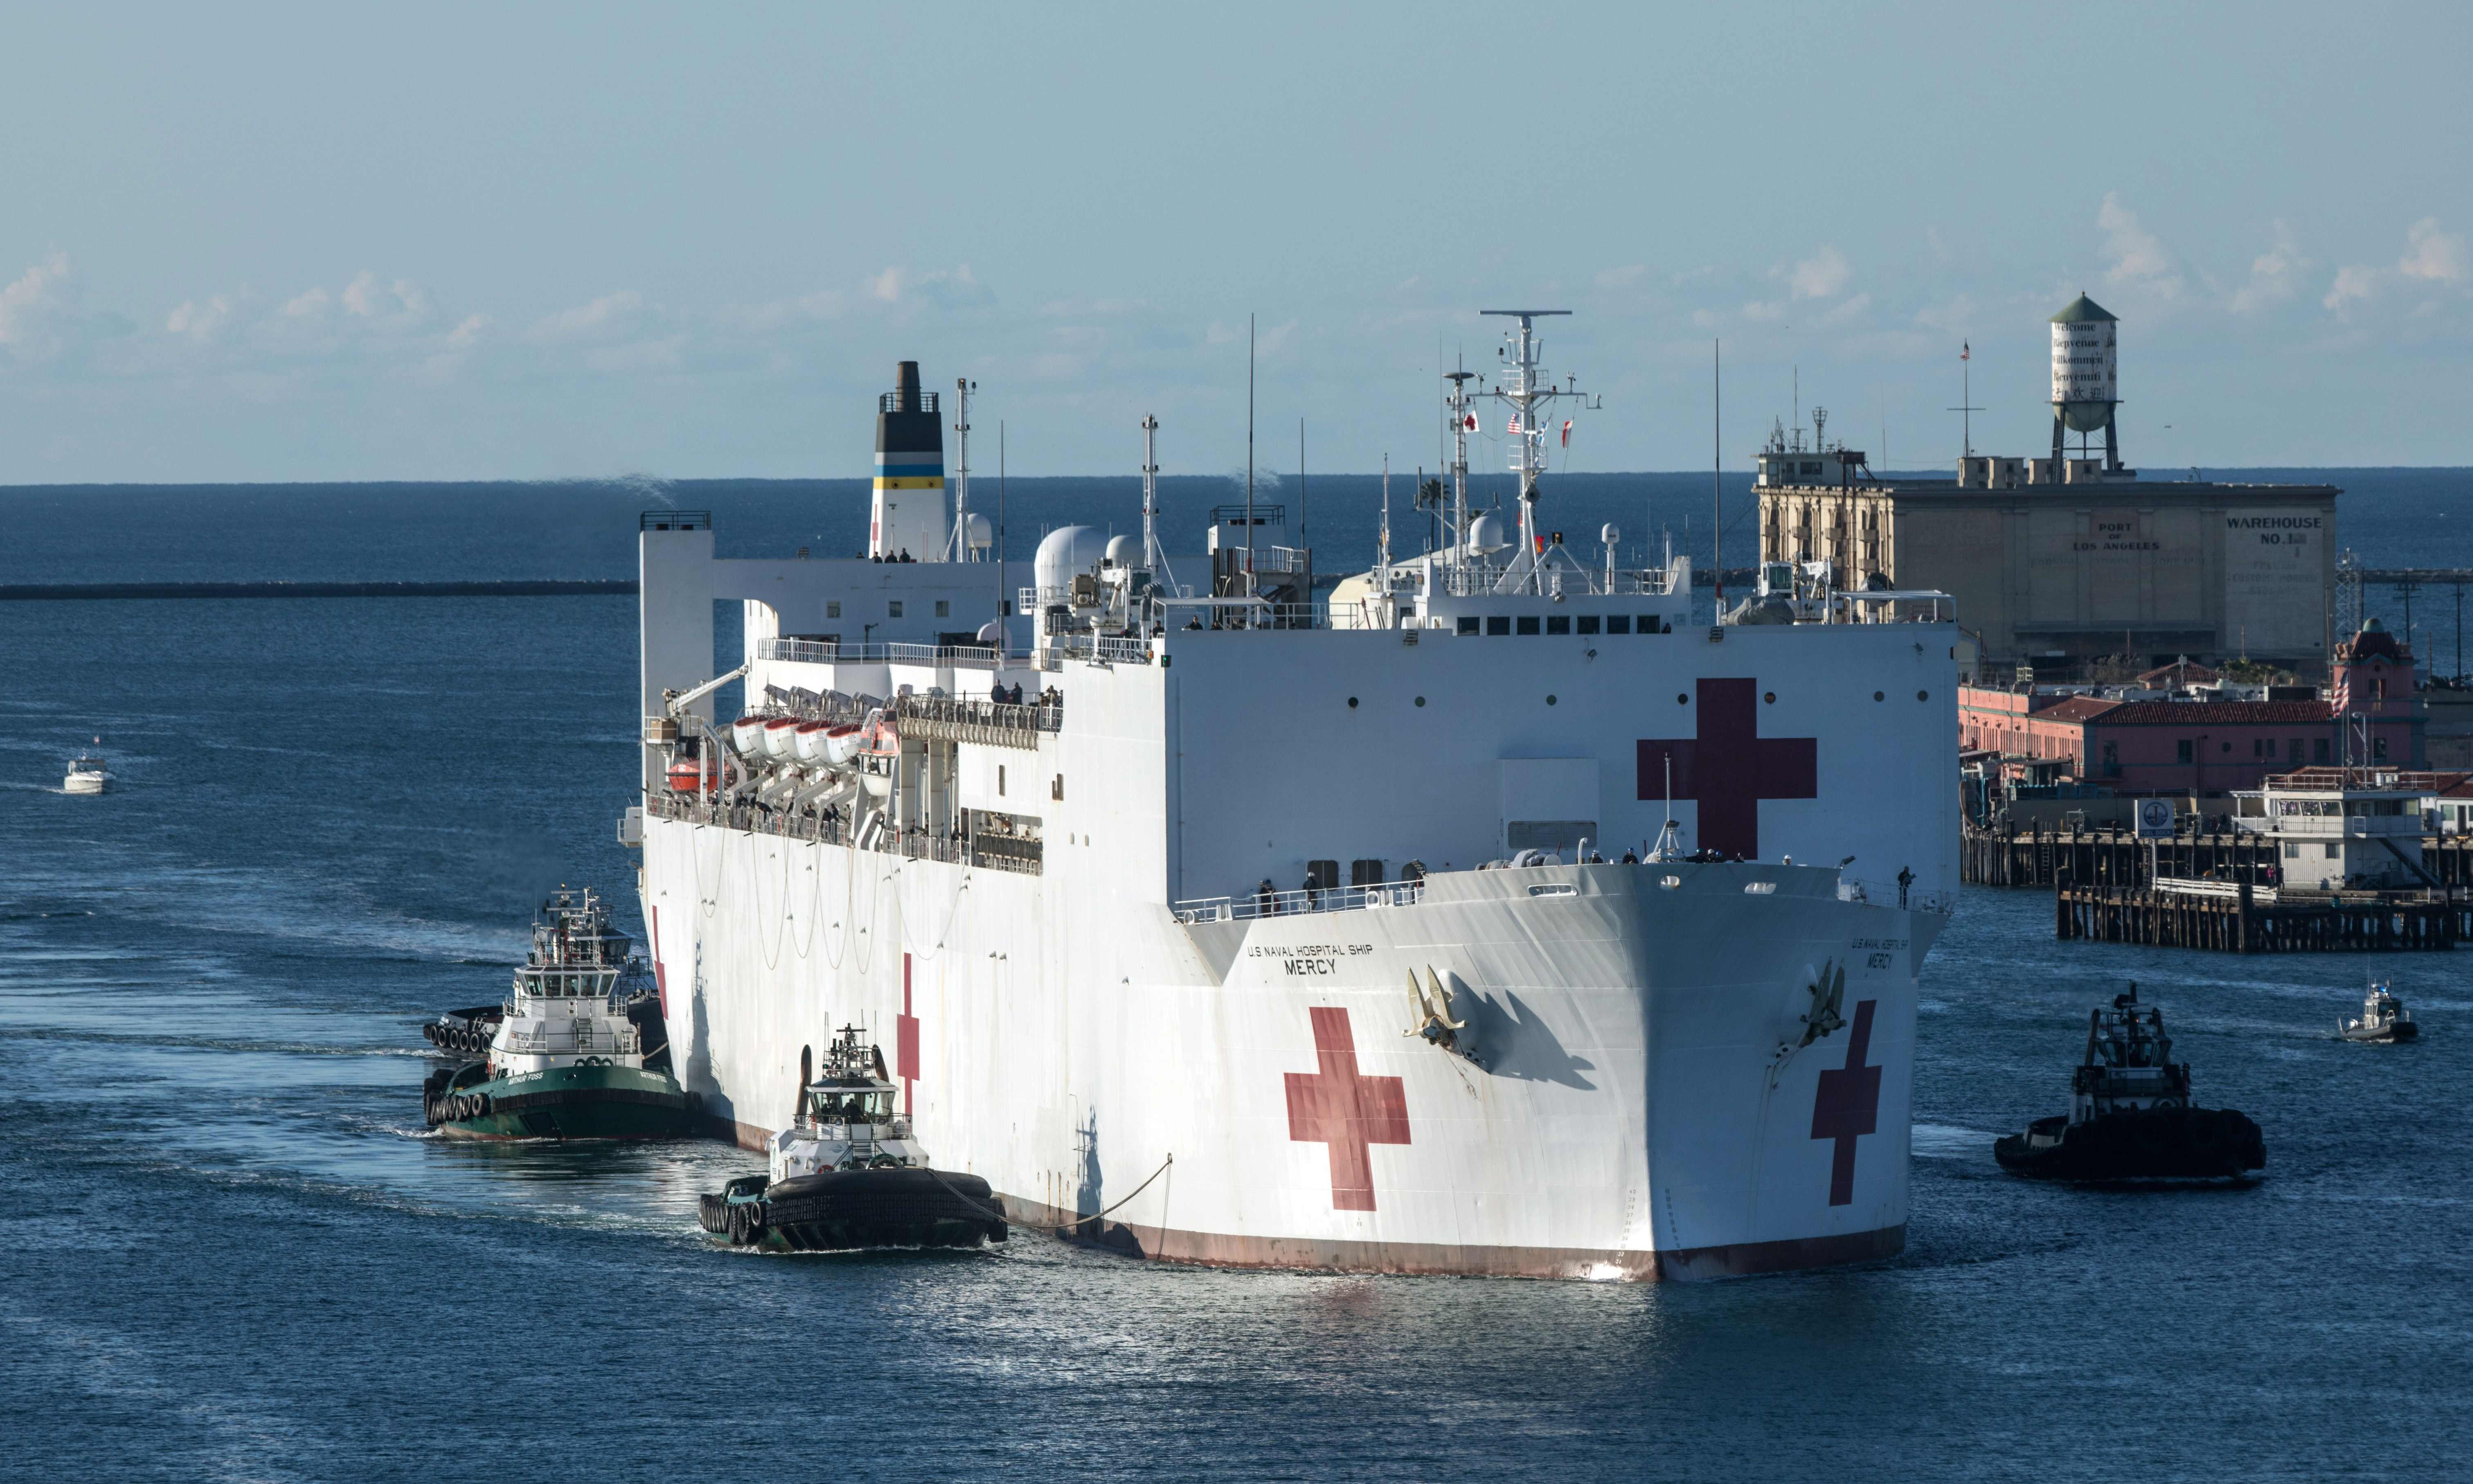 Hospital ship arrives in LA as California braces for crisis on par with New York